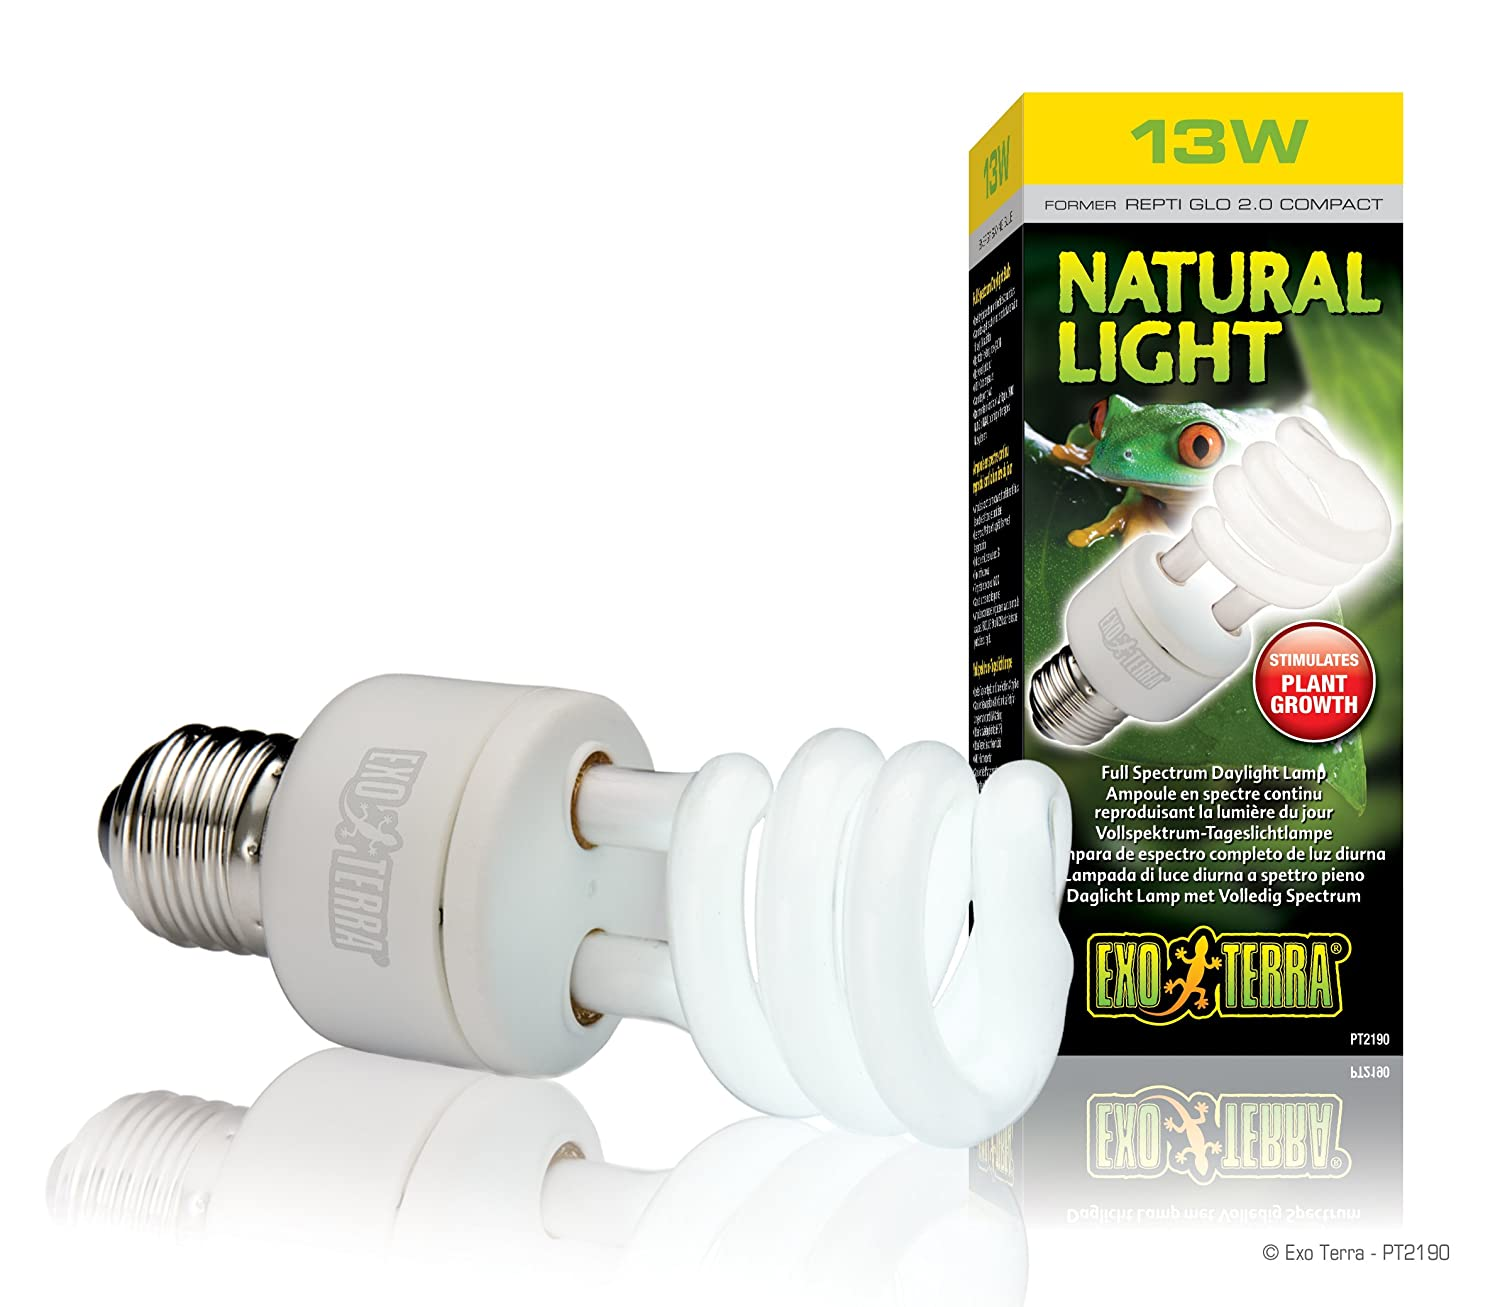 Which fluorescent lamps are suitable for plant lighting 60